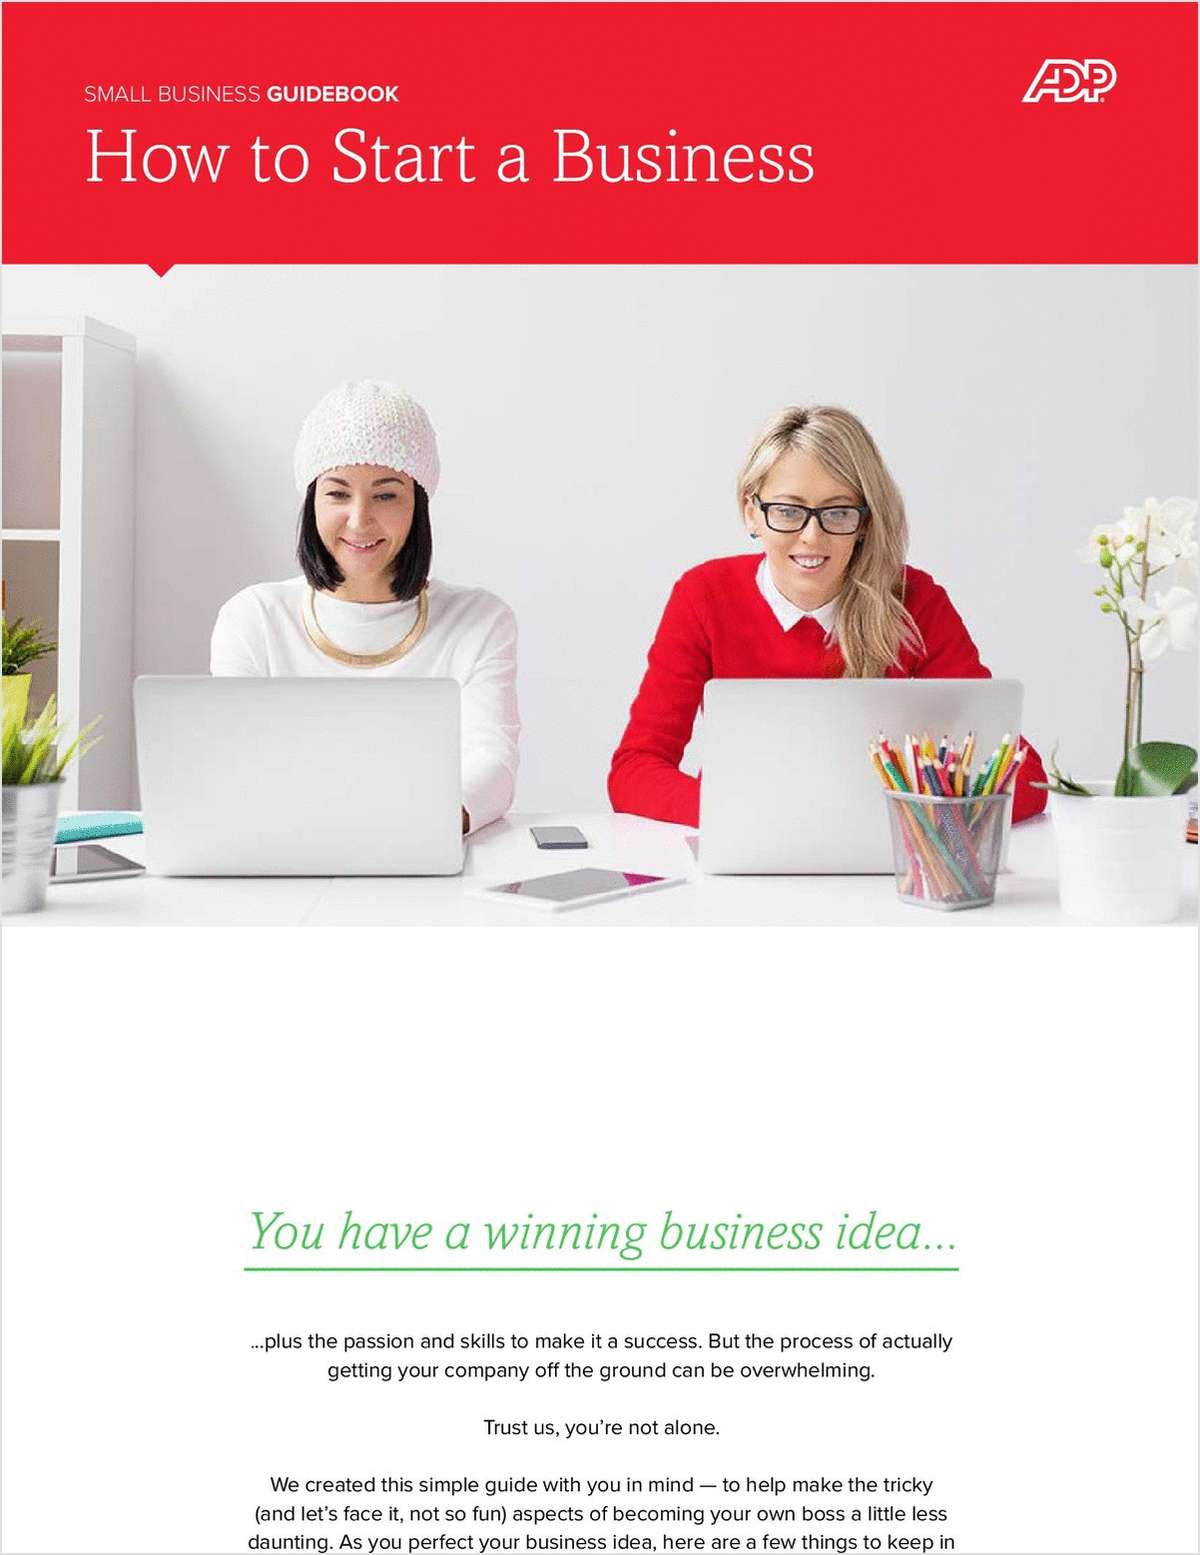 How to Start a Business: Small Business Guidebook